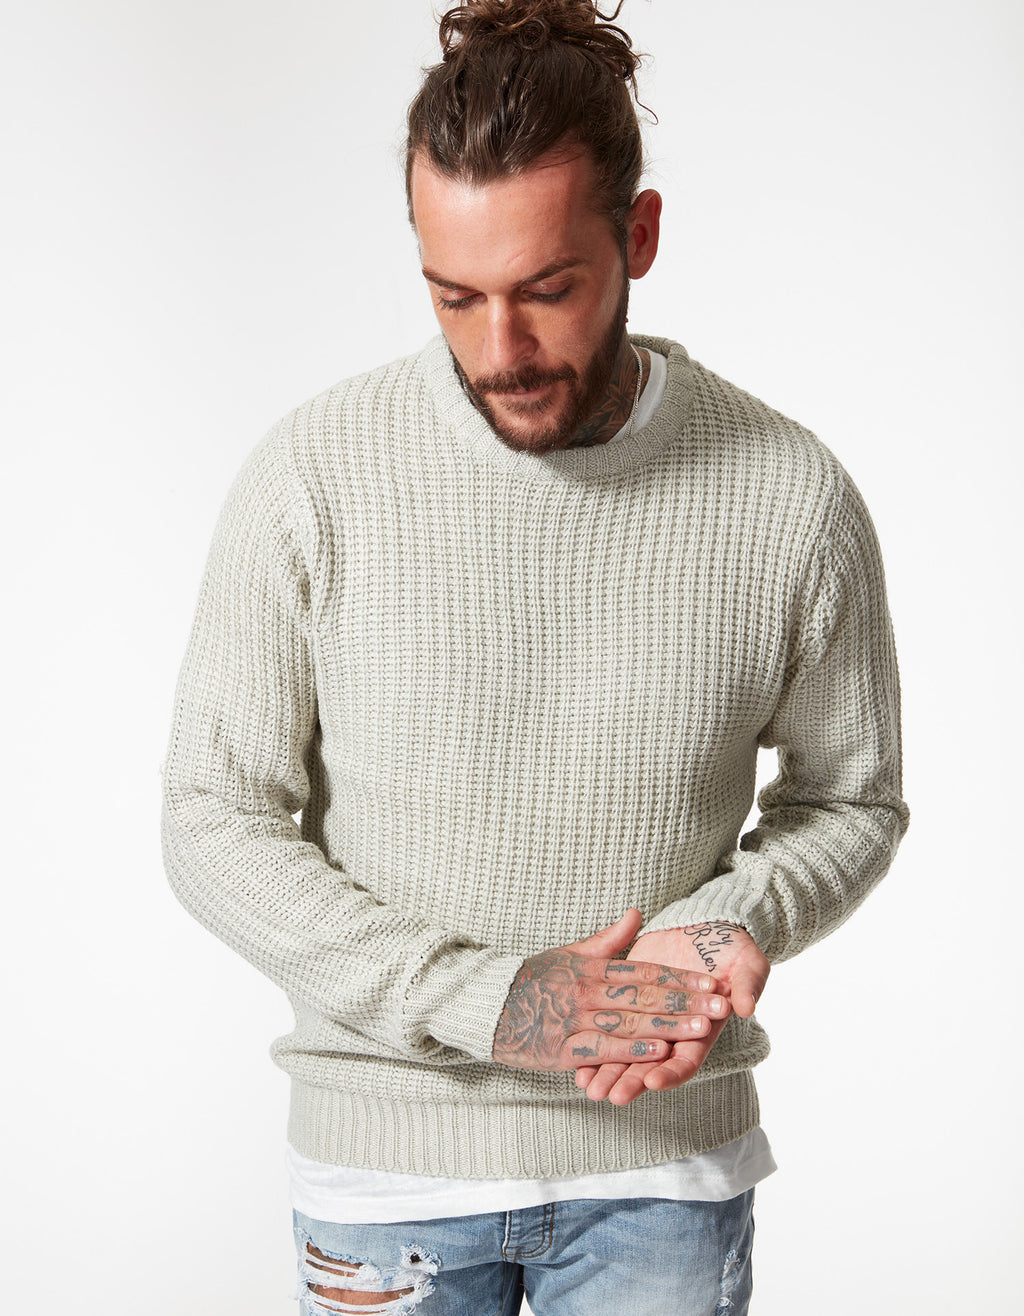 BRUNO LIGHTWEIGHT KNIT SWEATSHIRT BARLEY